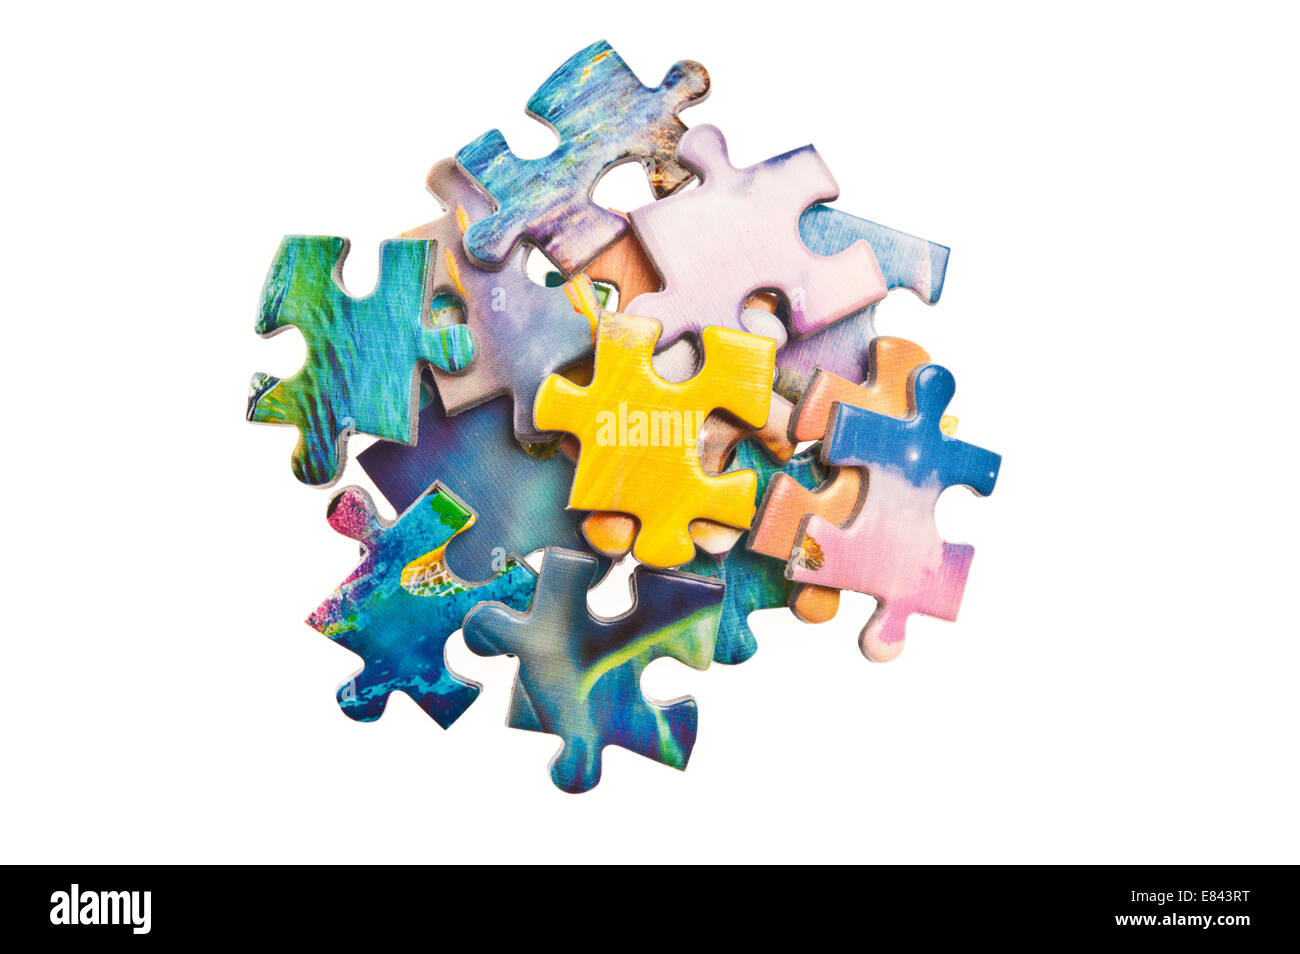 colorful jigsaw puzzle pieces - Stock Image